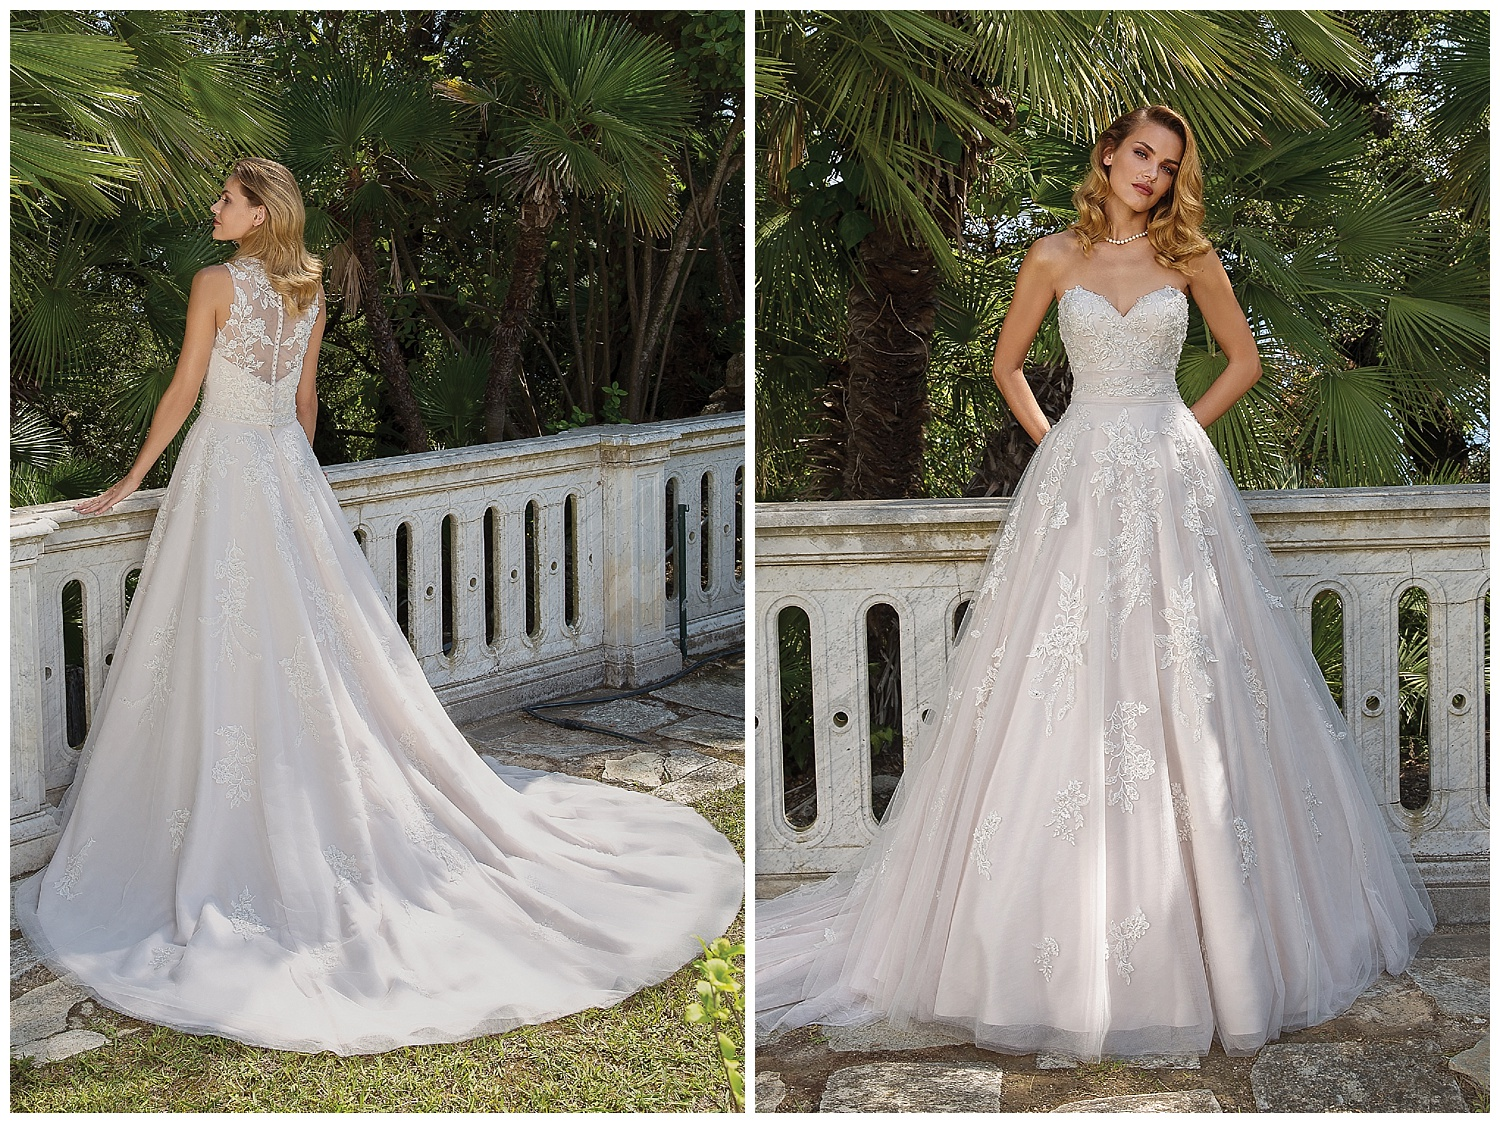 justin-alexander-88089-lace-ballgown-with-topper-epiphany-boutique-carmel-california.jpg